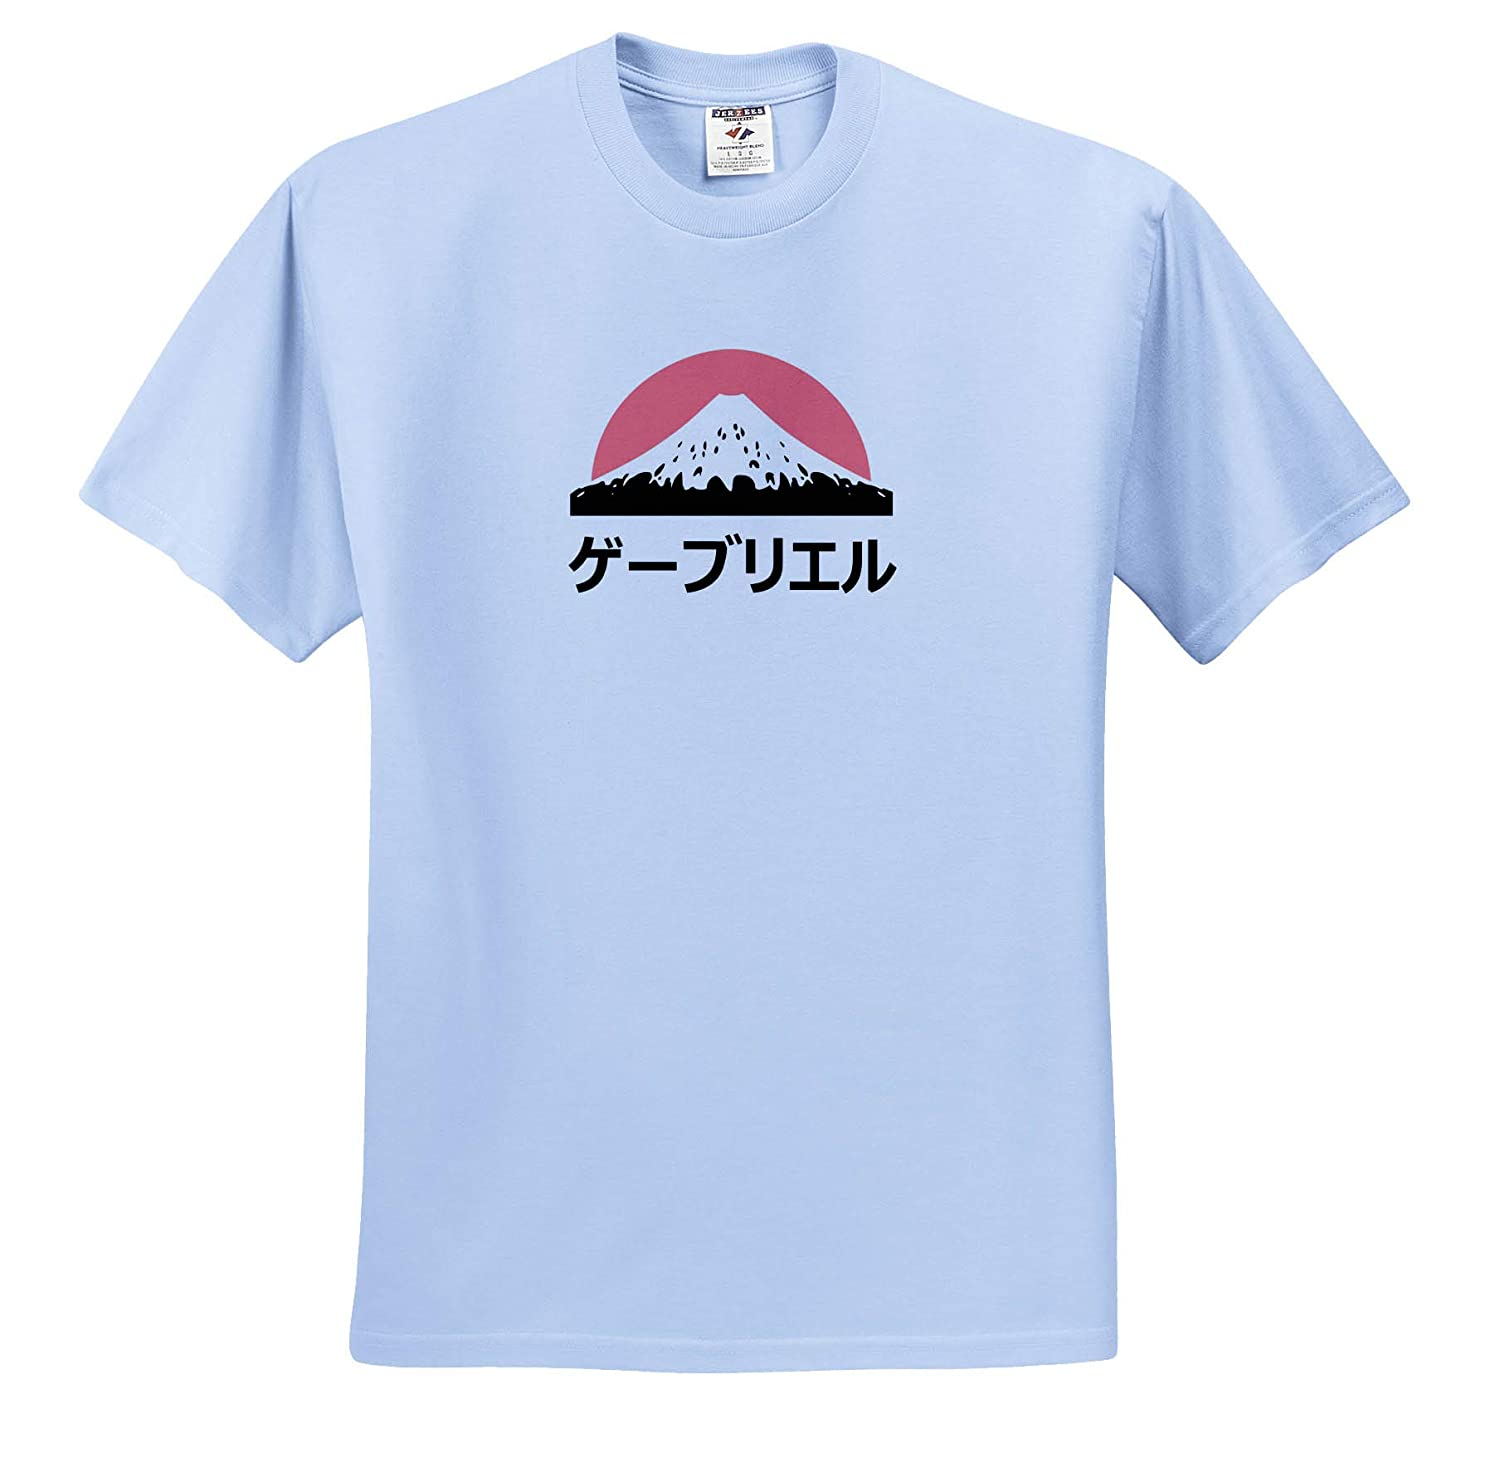 Adult T-Shirt XL Name in Japanese ts/_320488 3dRose InspirationzStore Gabriel in Japanese Letters